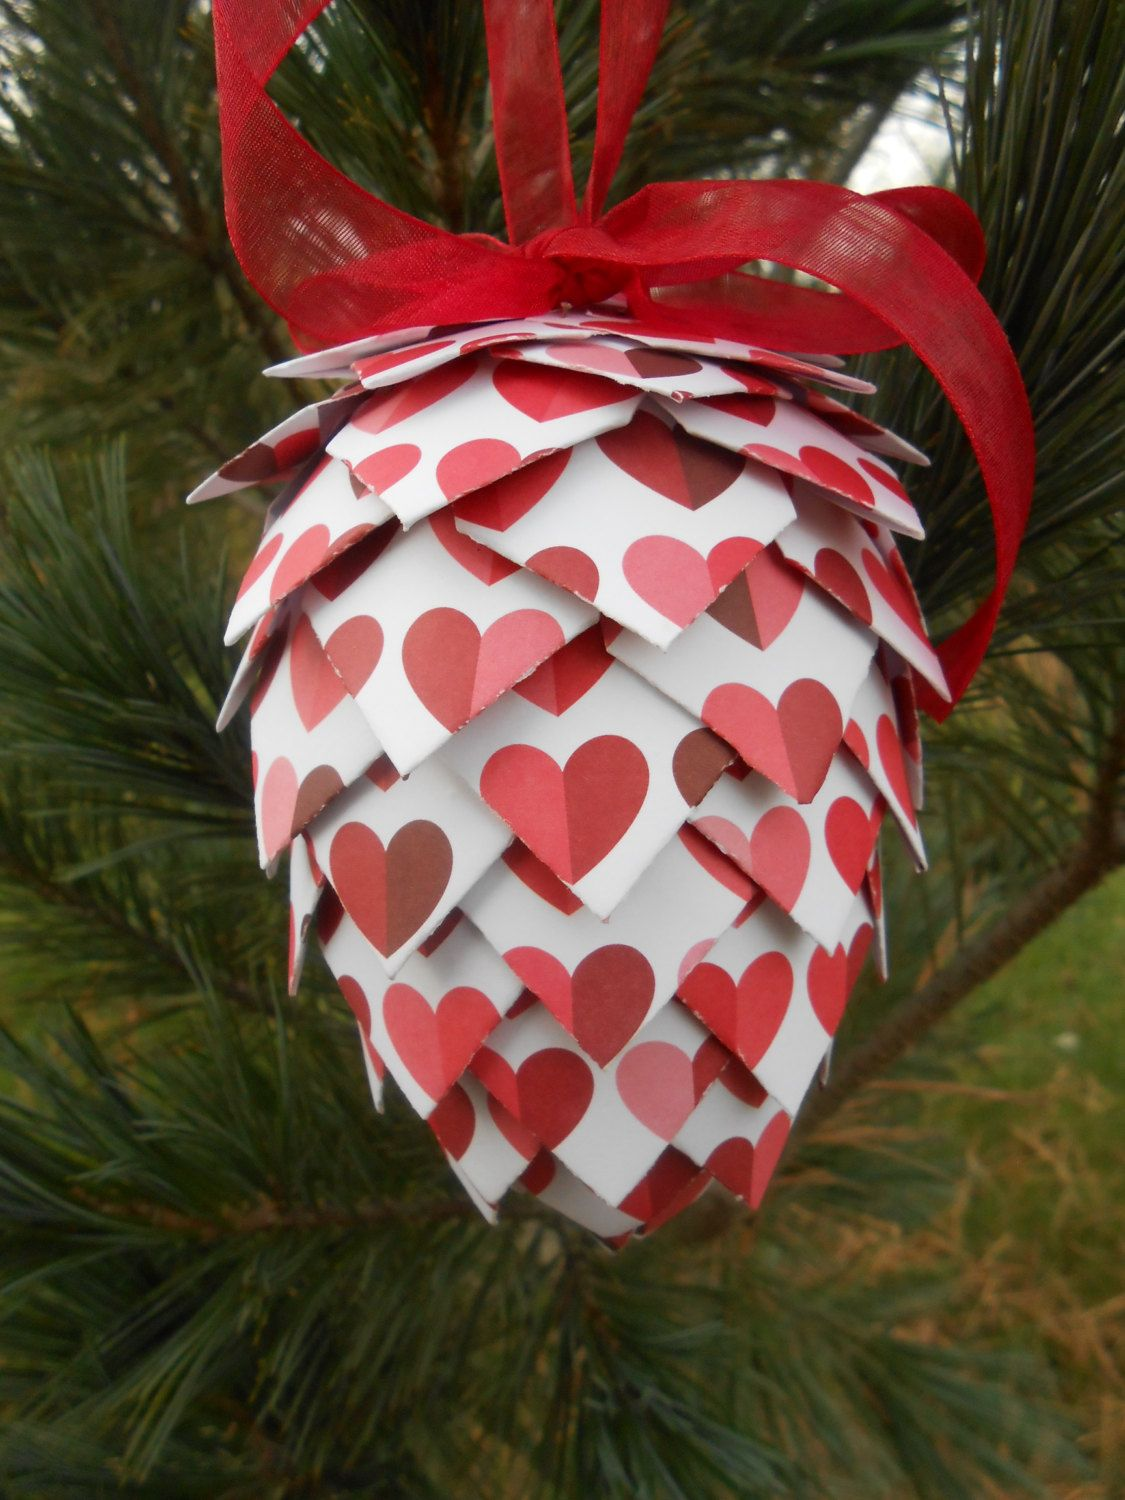 Heart Paper Pinecone Ornament Decoration Christmas Gift Etsy Pinecone Ornaments Paper Hearts Paper Flowers